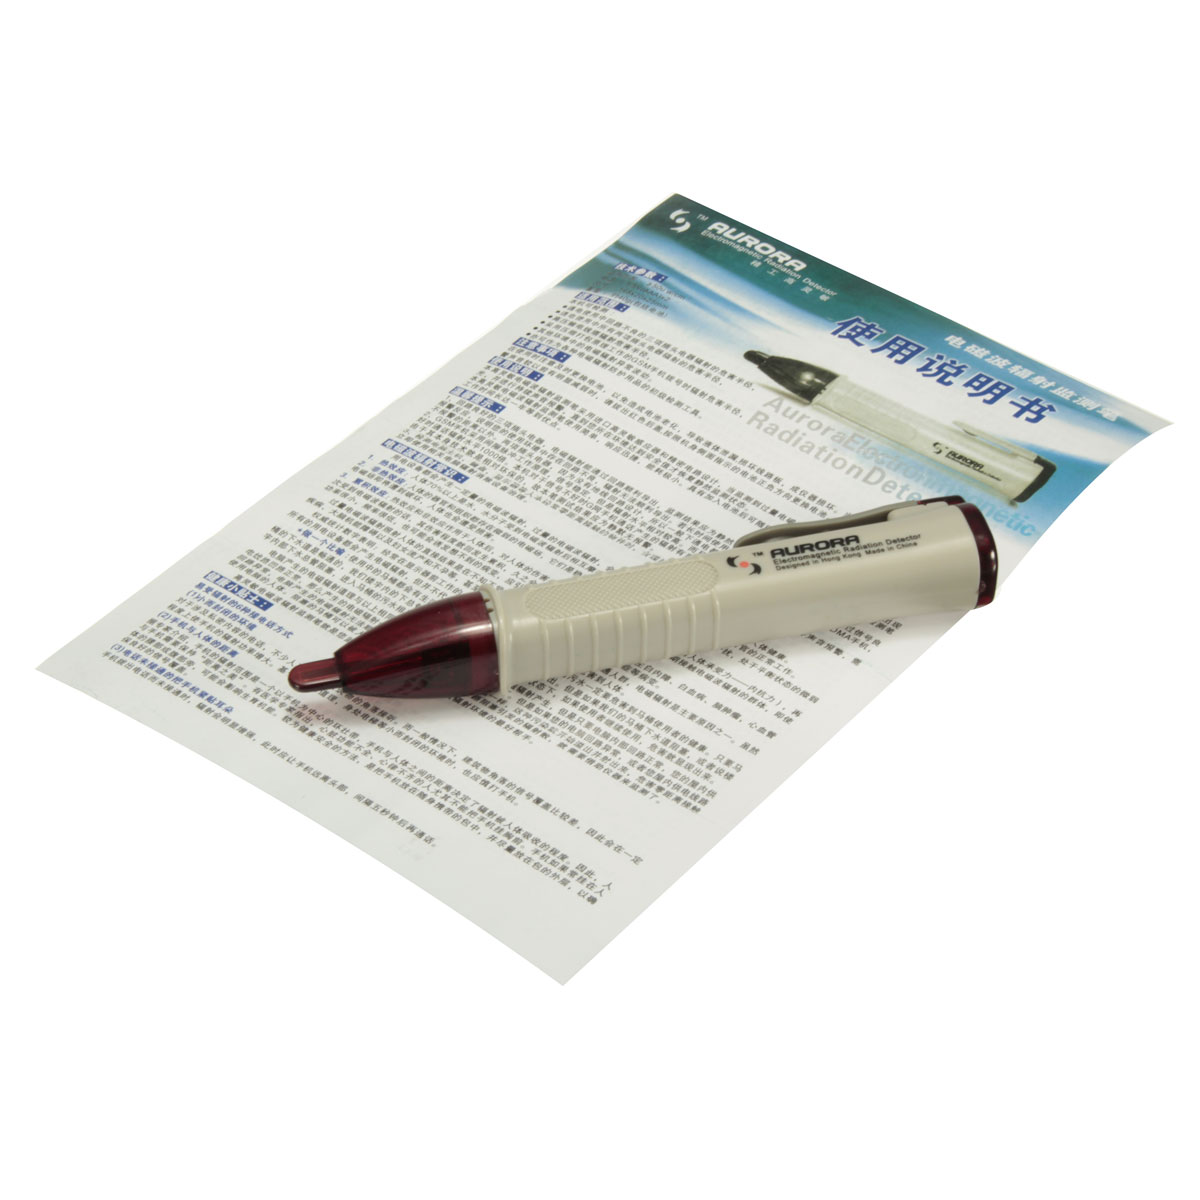 Noncontact High Sensitive Pen Shaped Electromagnetic Radiation Detector Tester